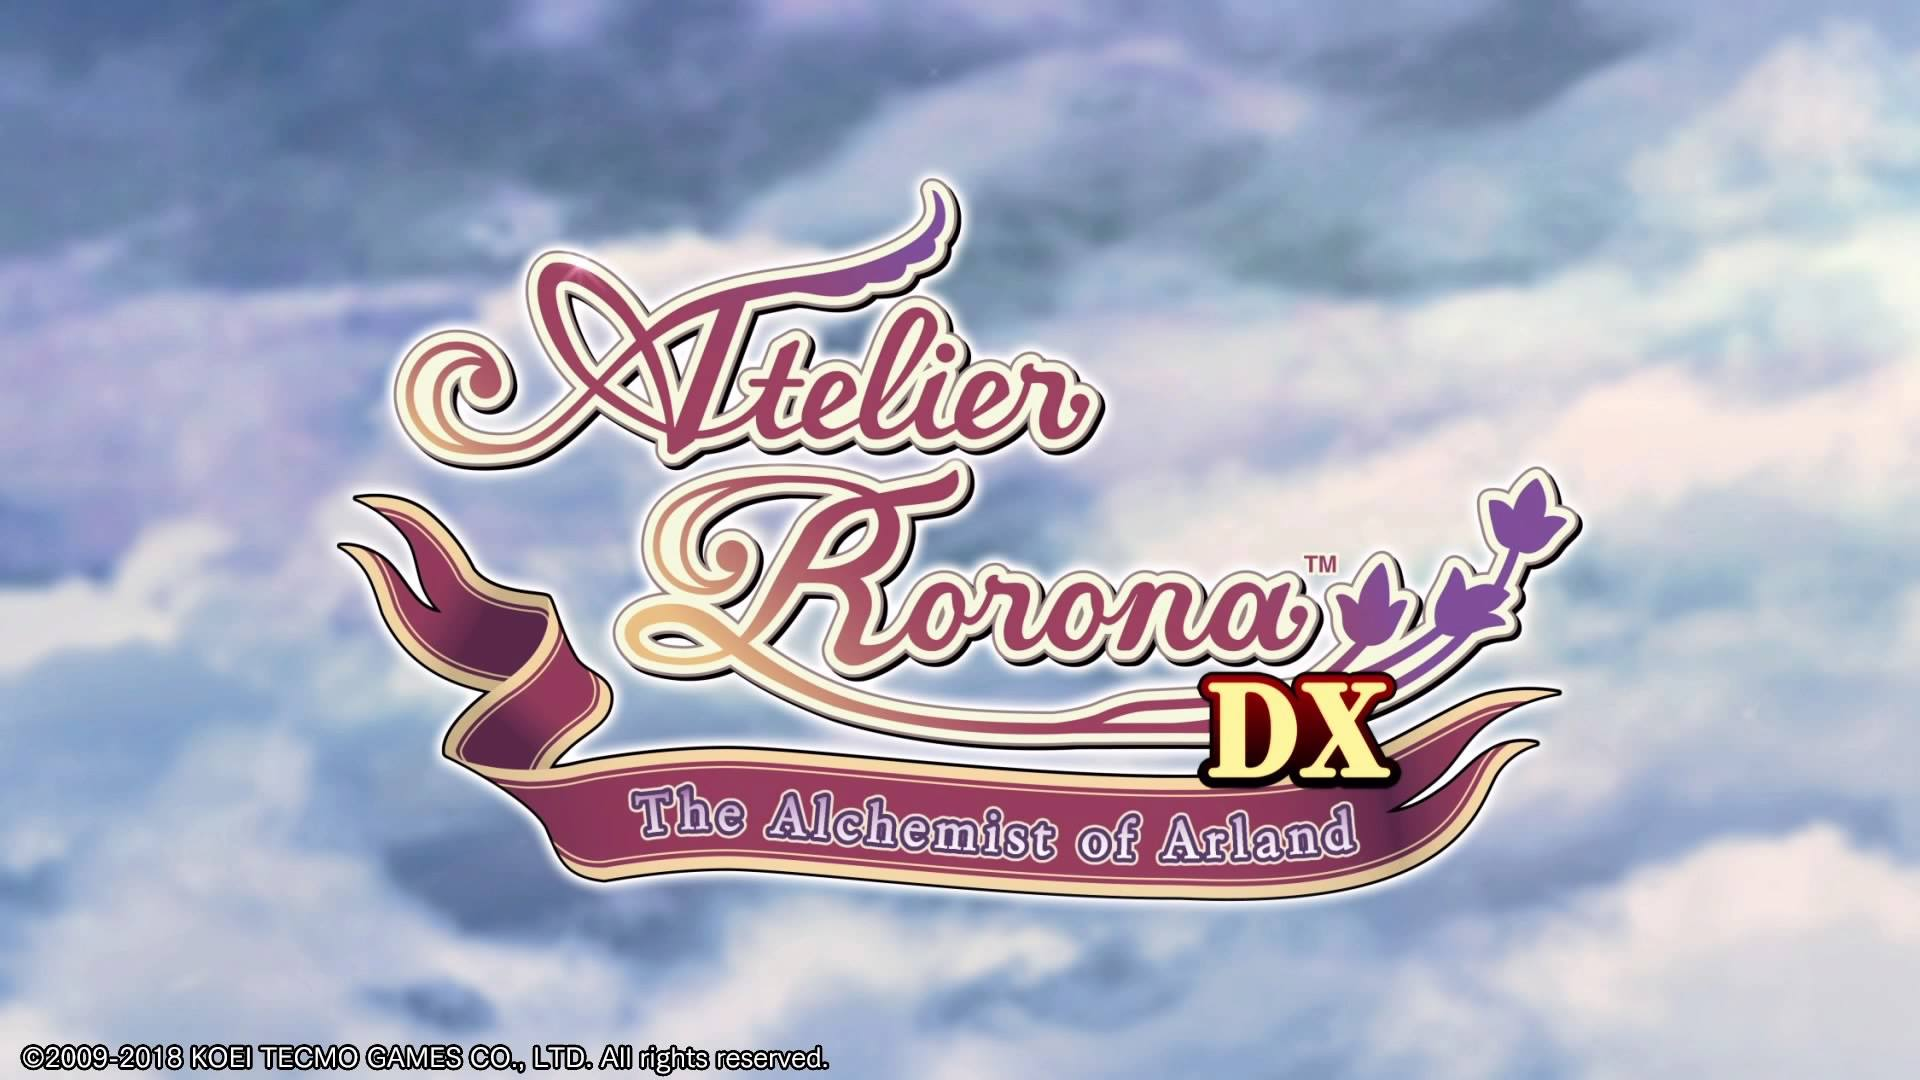 atelierarland_ps4_review2.jpg